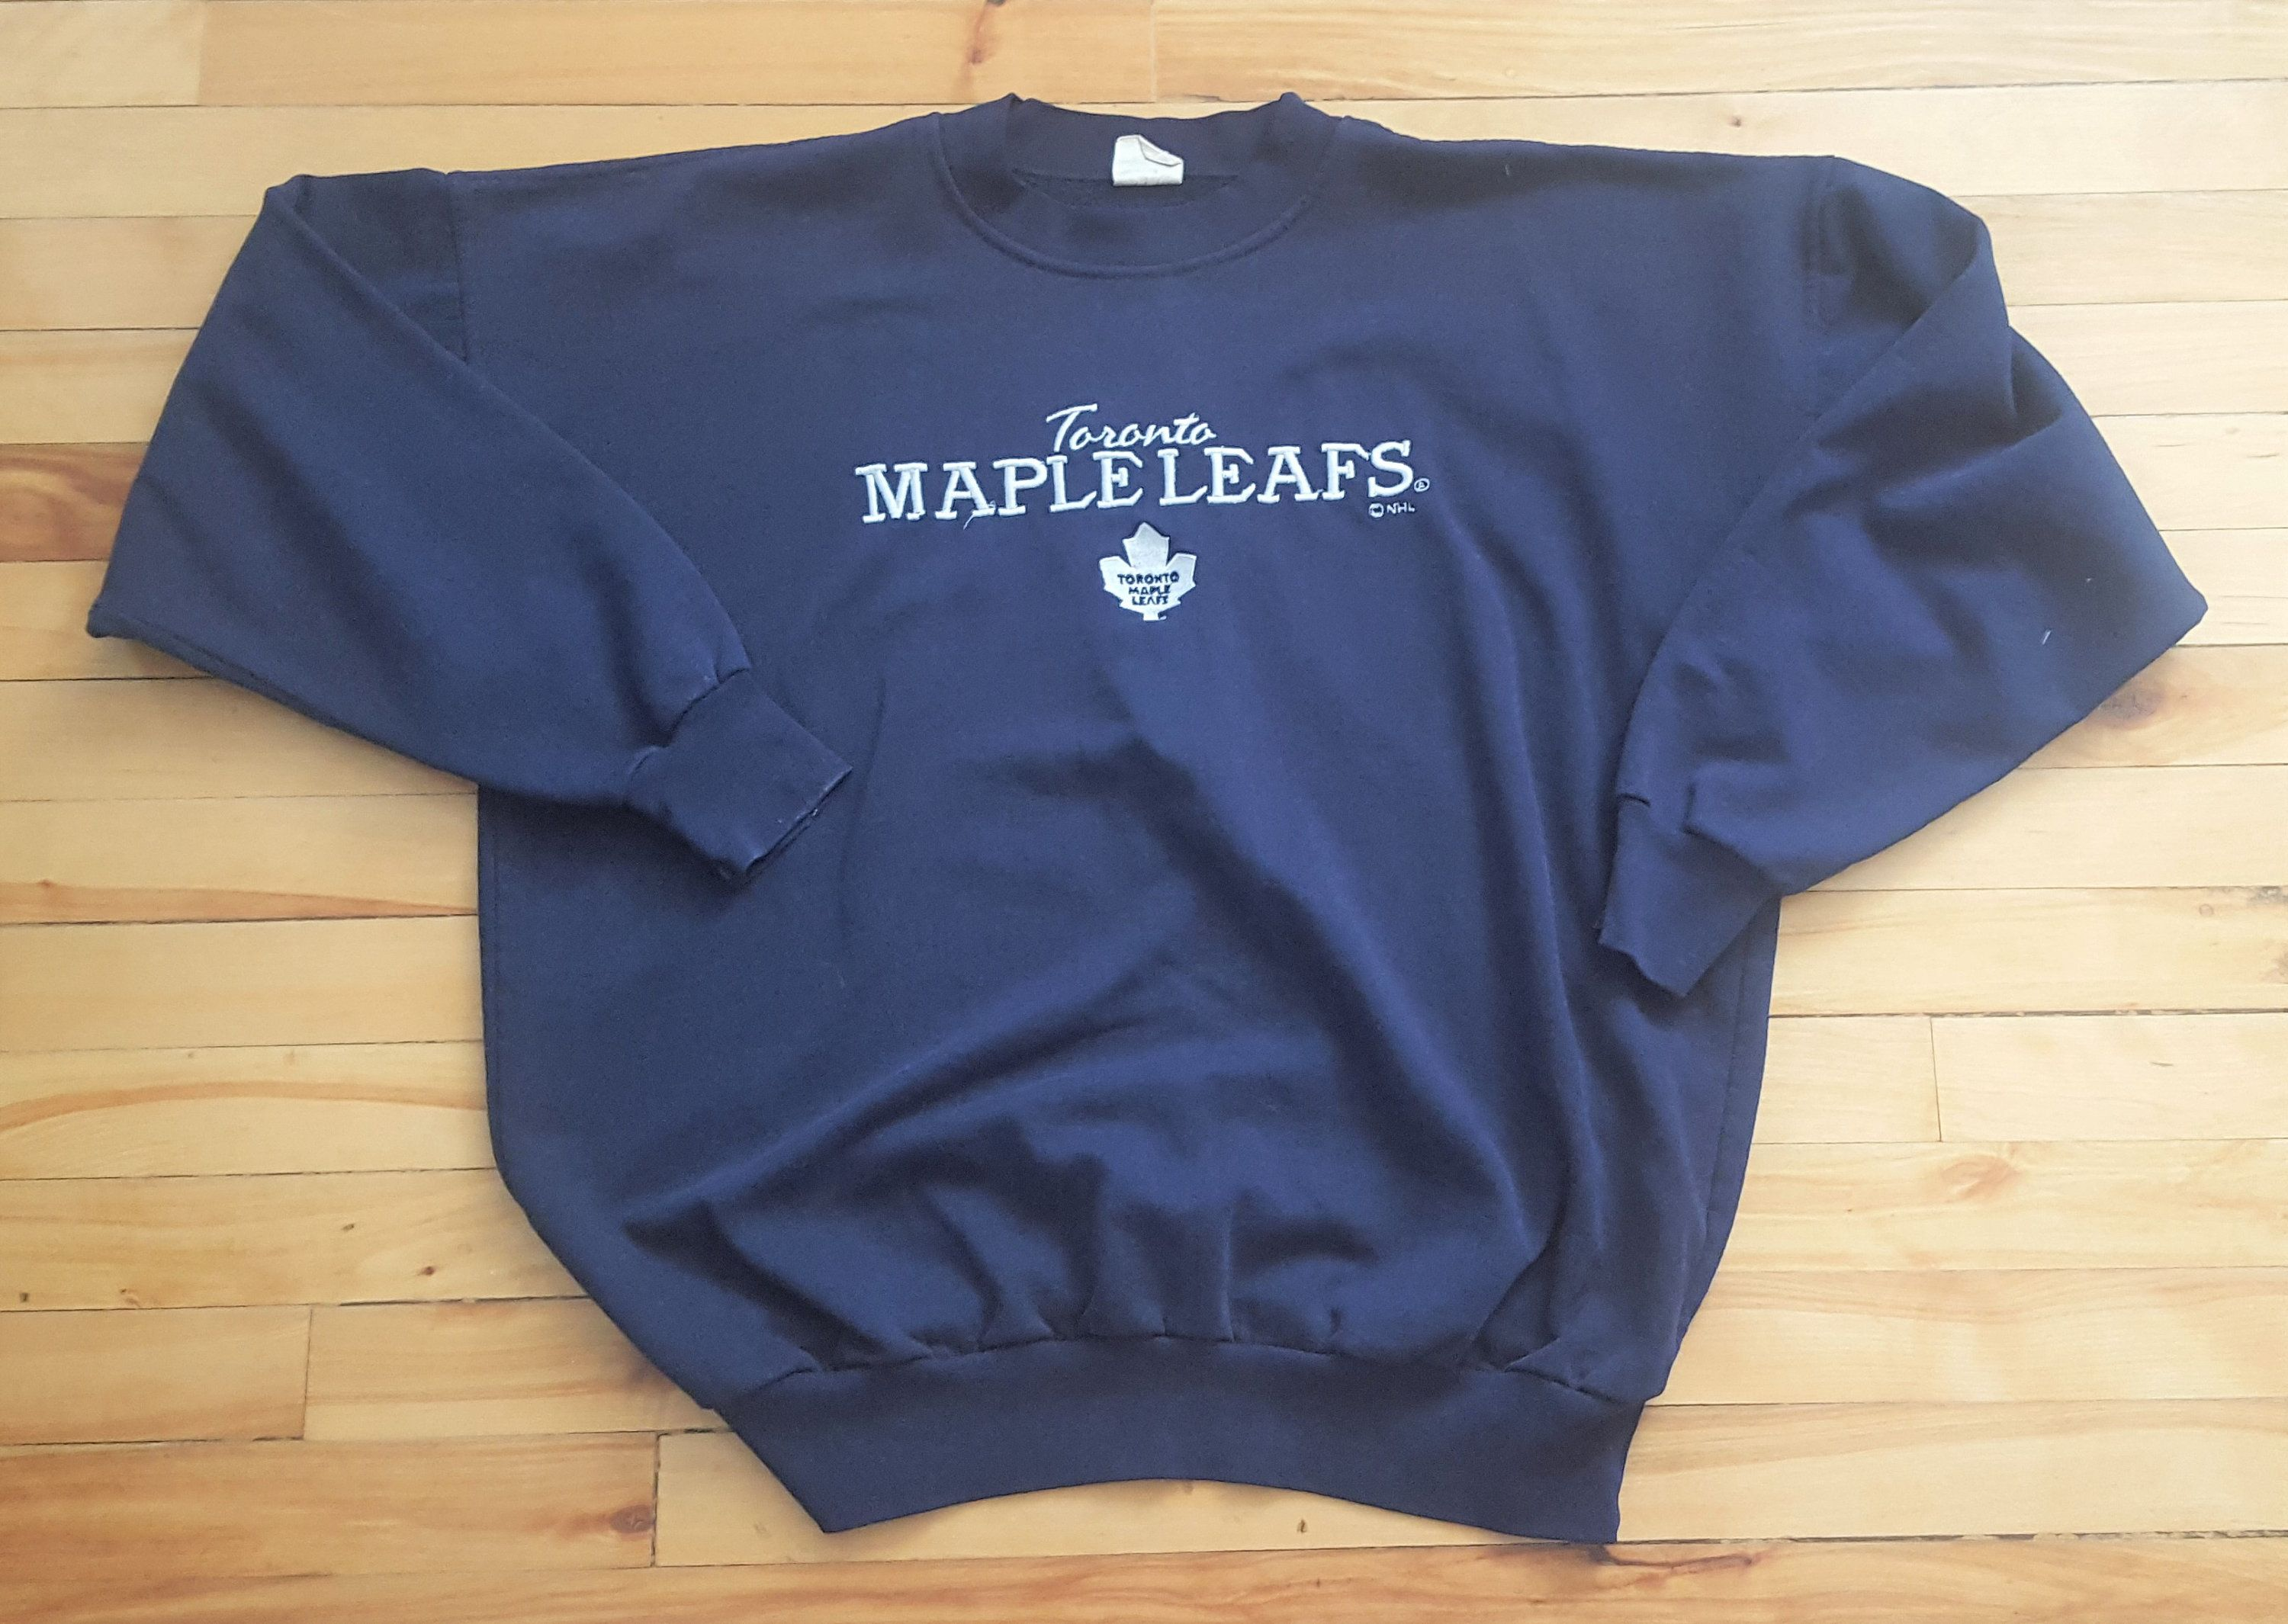 sports shoes 5a44a bdf84 Vintage Toronto Maple Leafs Large Crewneck Sweater NHL VTG ...